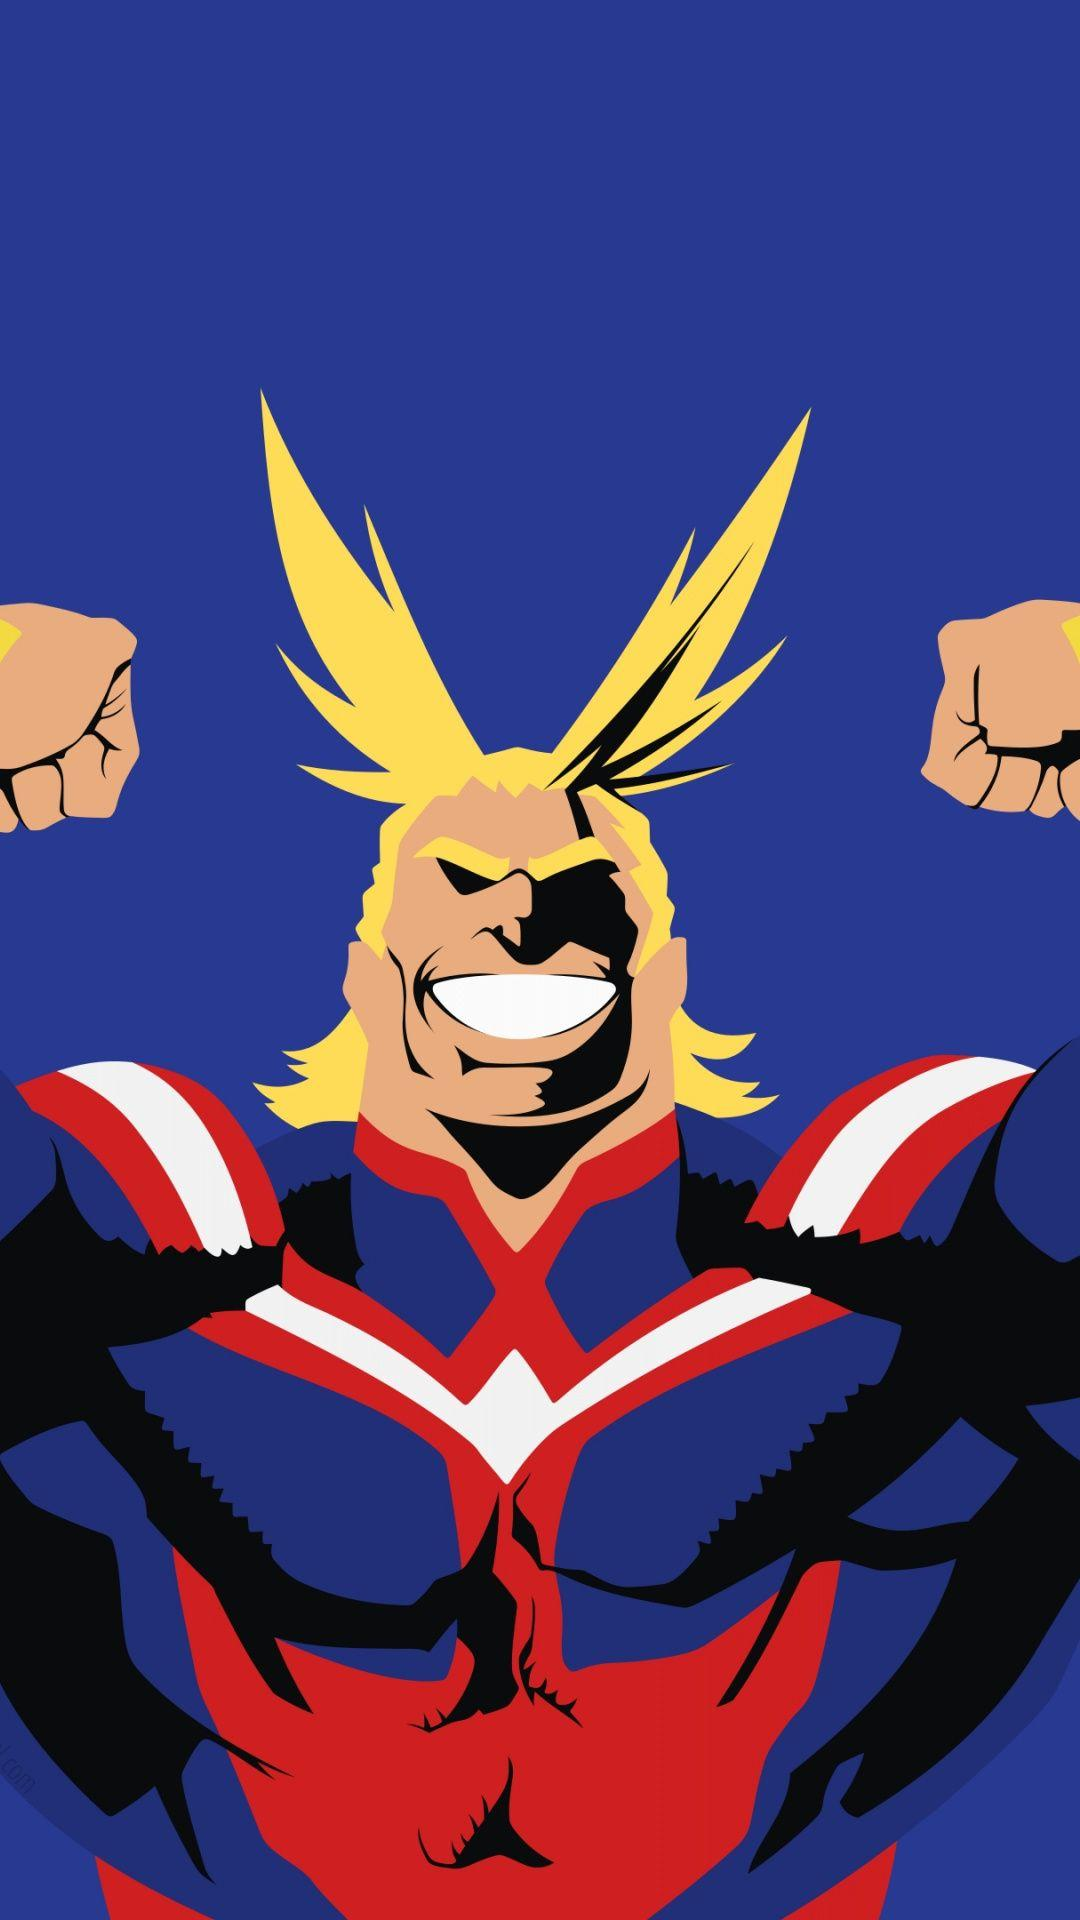 Anime boy, All Might, minimal, artwork wallpapers